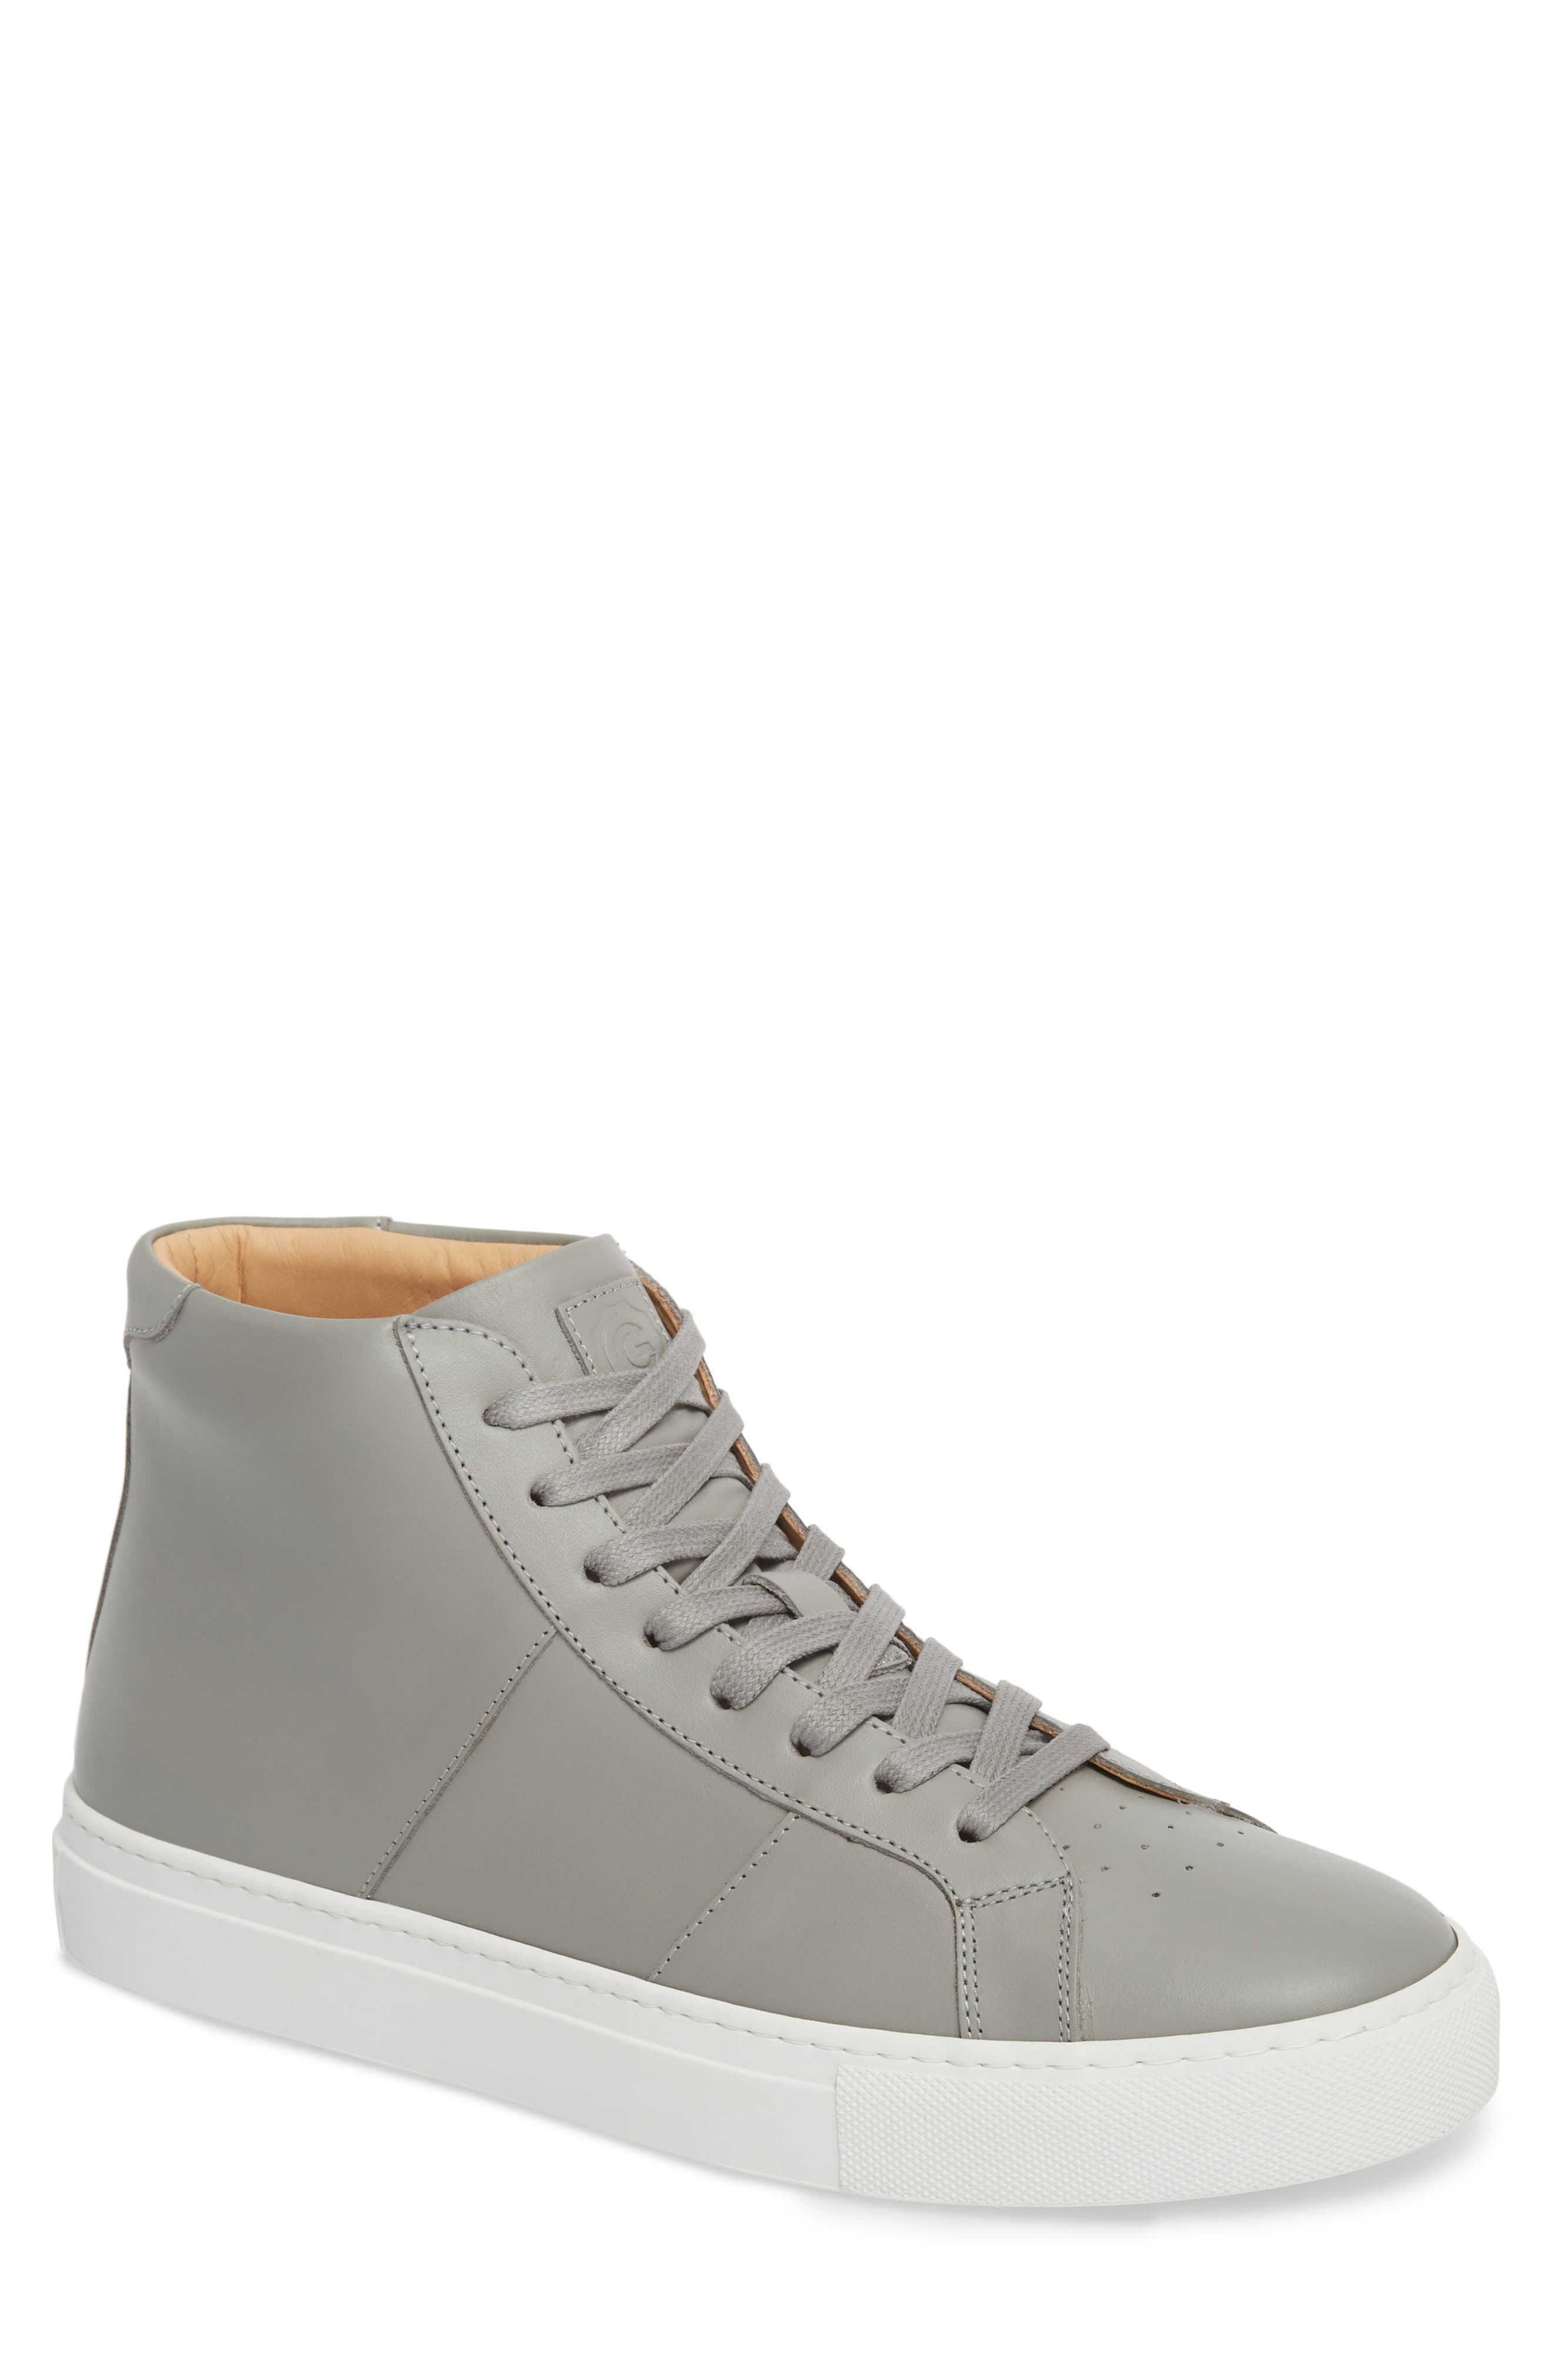 Royale High Top Sneaker,                         Main,                         color, Grey Leather